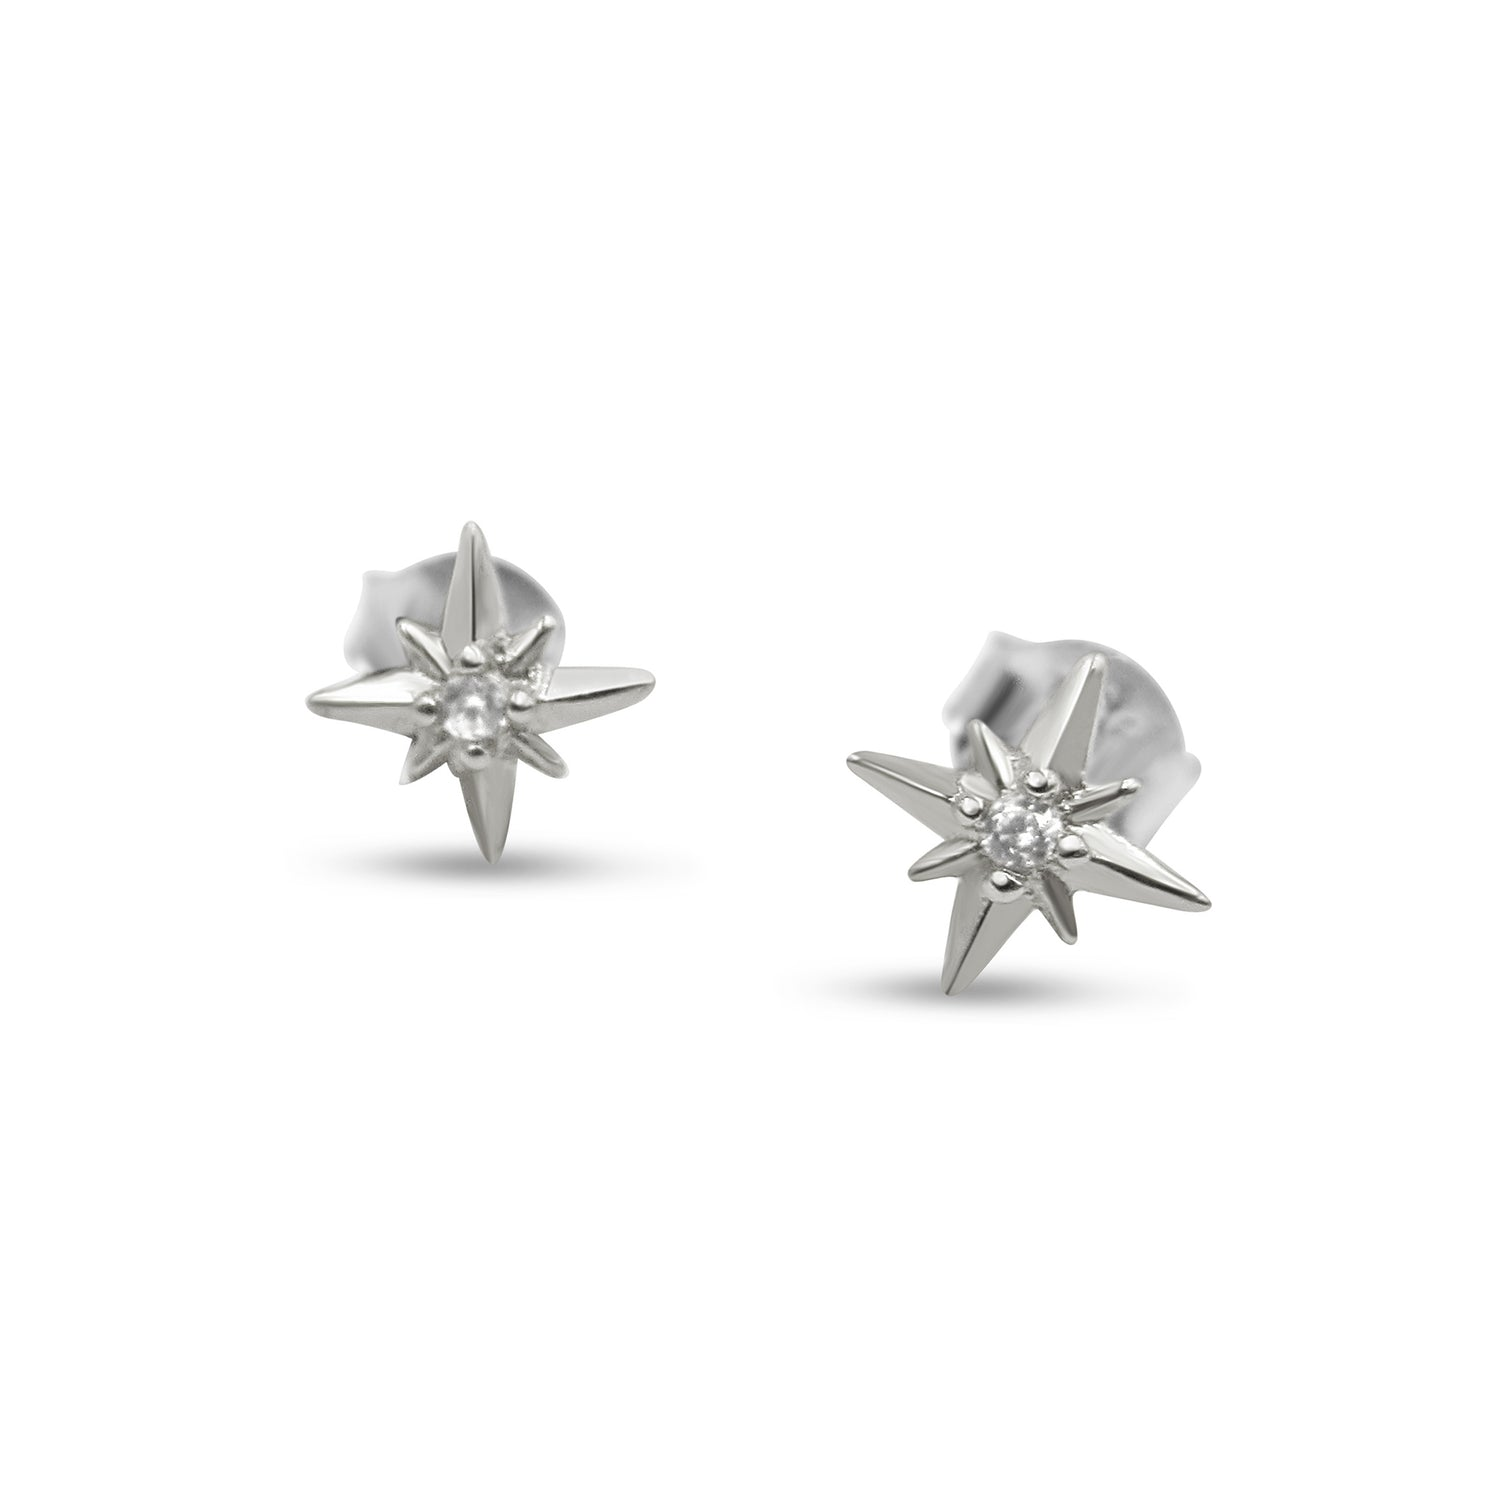 Twinkle Star Studs - Bing Bang Jewelry NYC